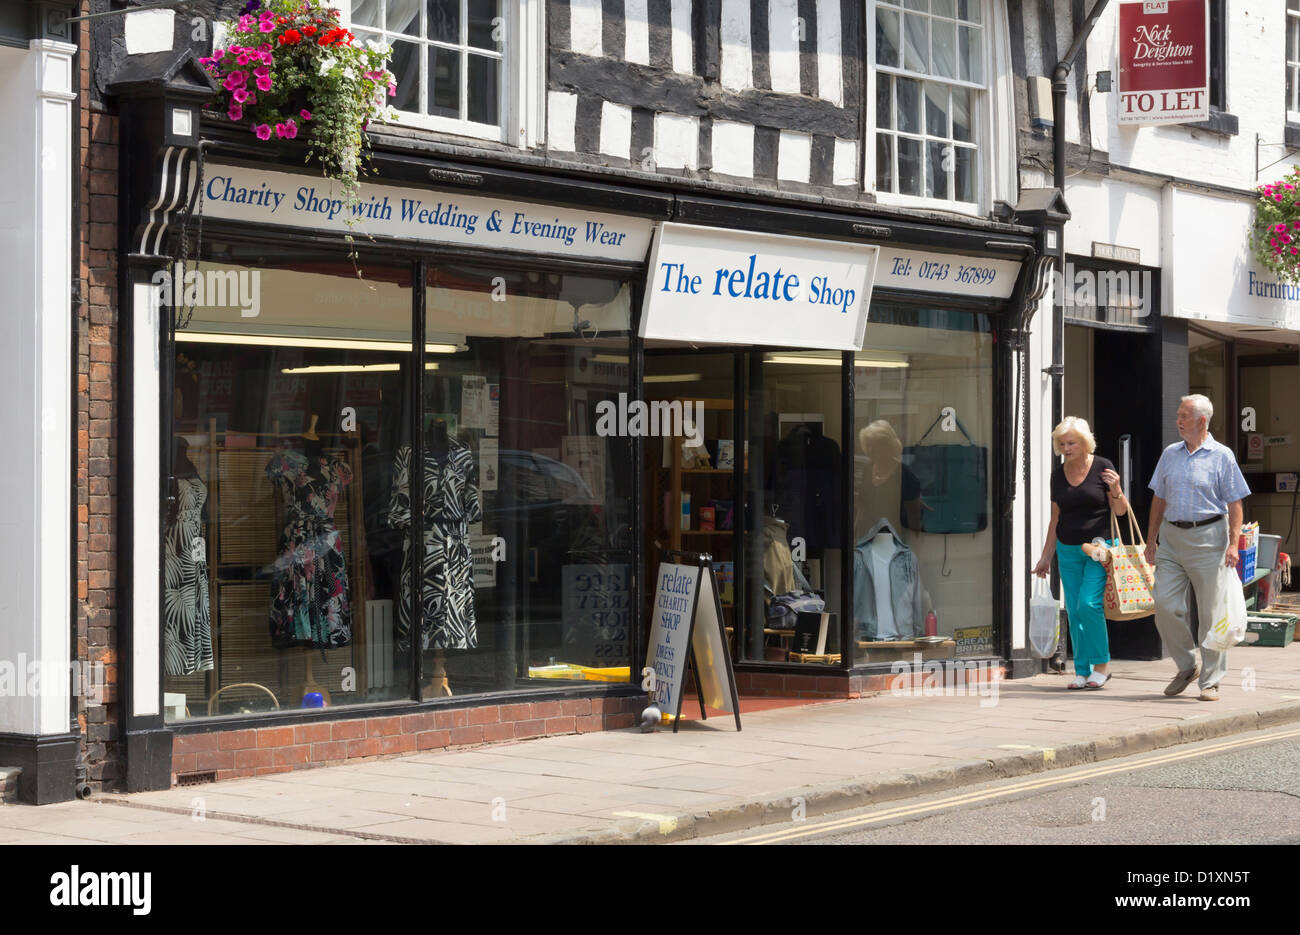 The dress agency - Stock Photo The Relate Charity Shop And Dress Agency On Mardol Shrewsbury Relate Was Formerly The National Marriage Guidance Council